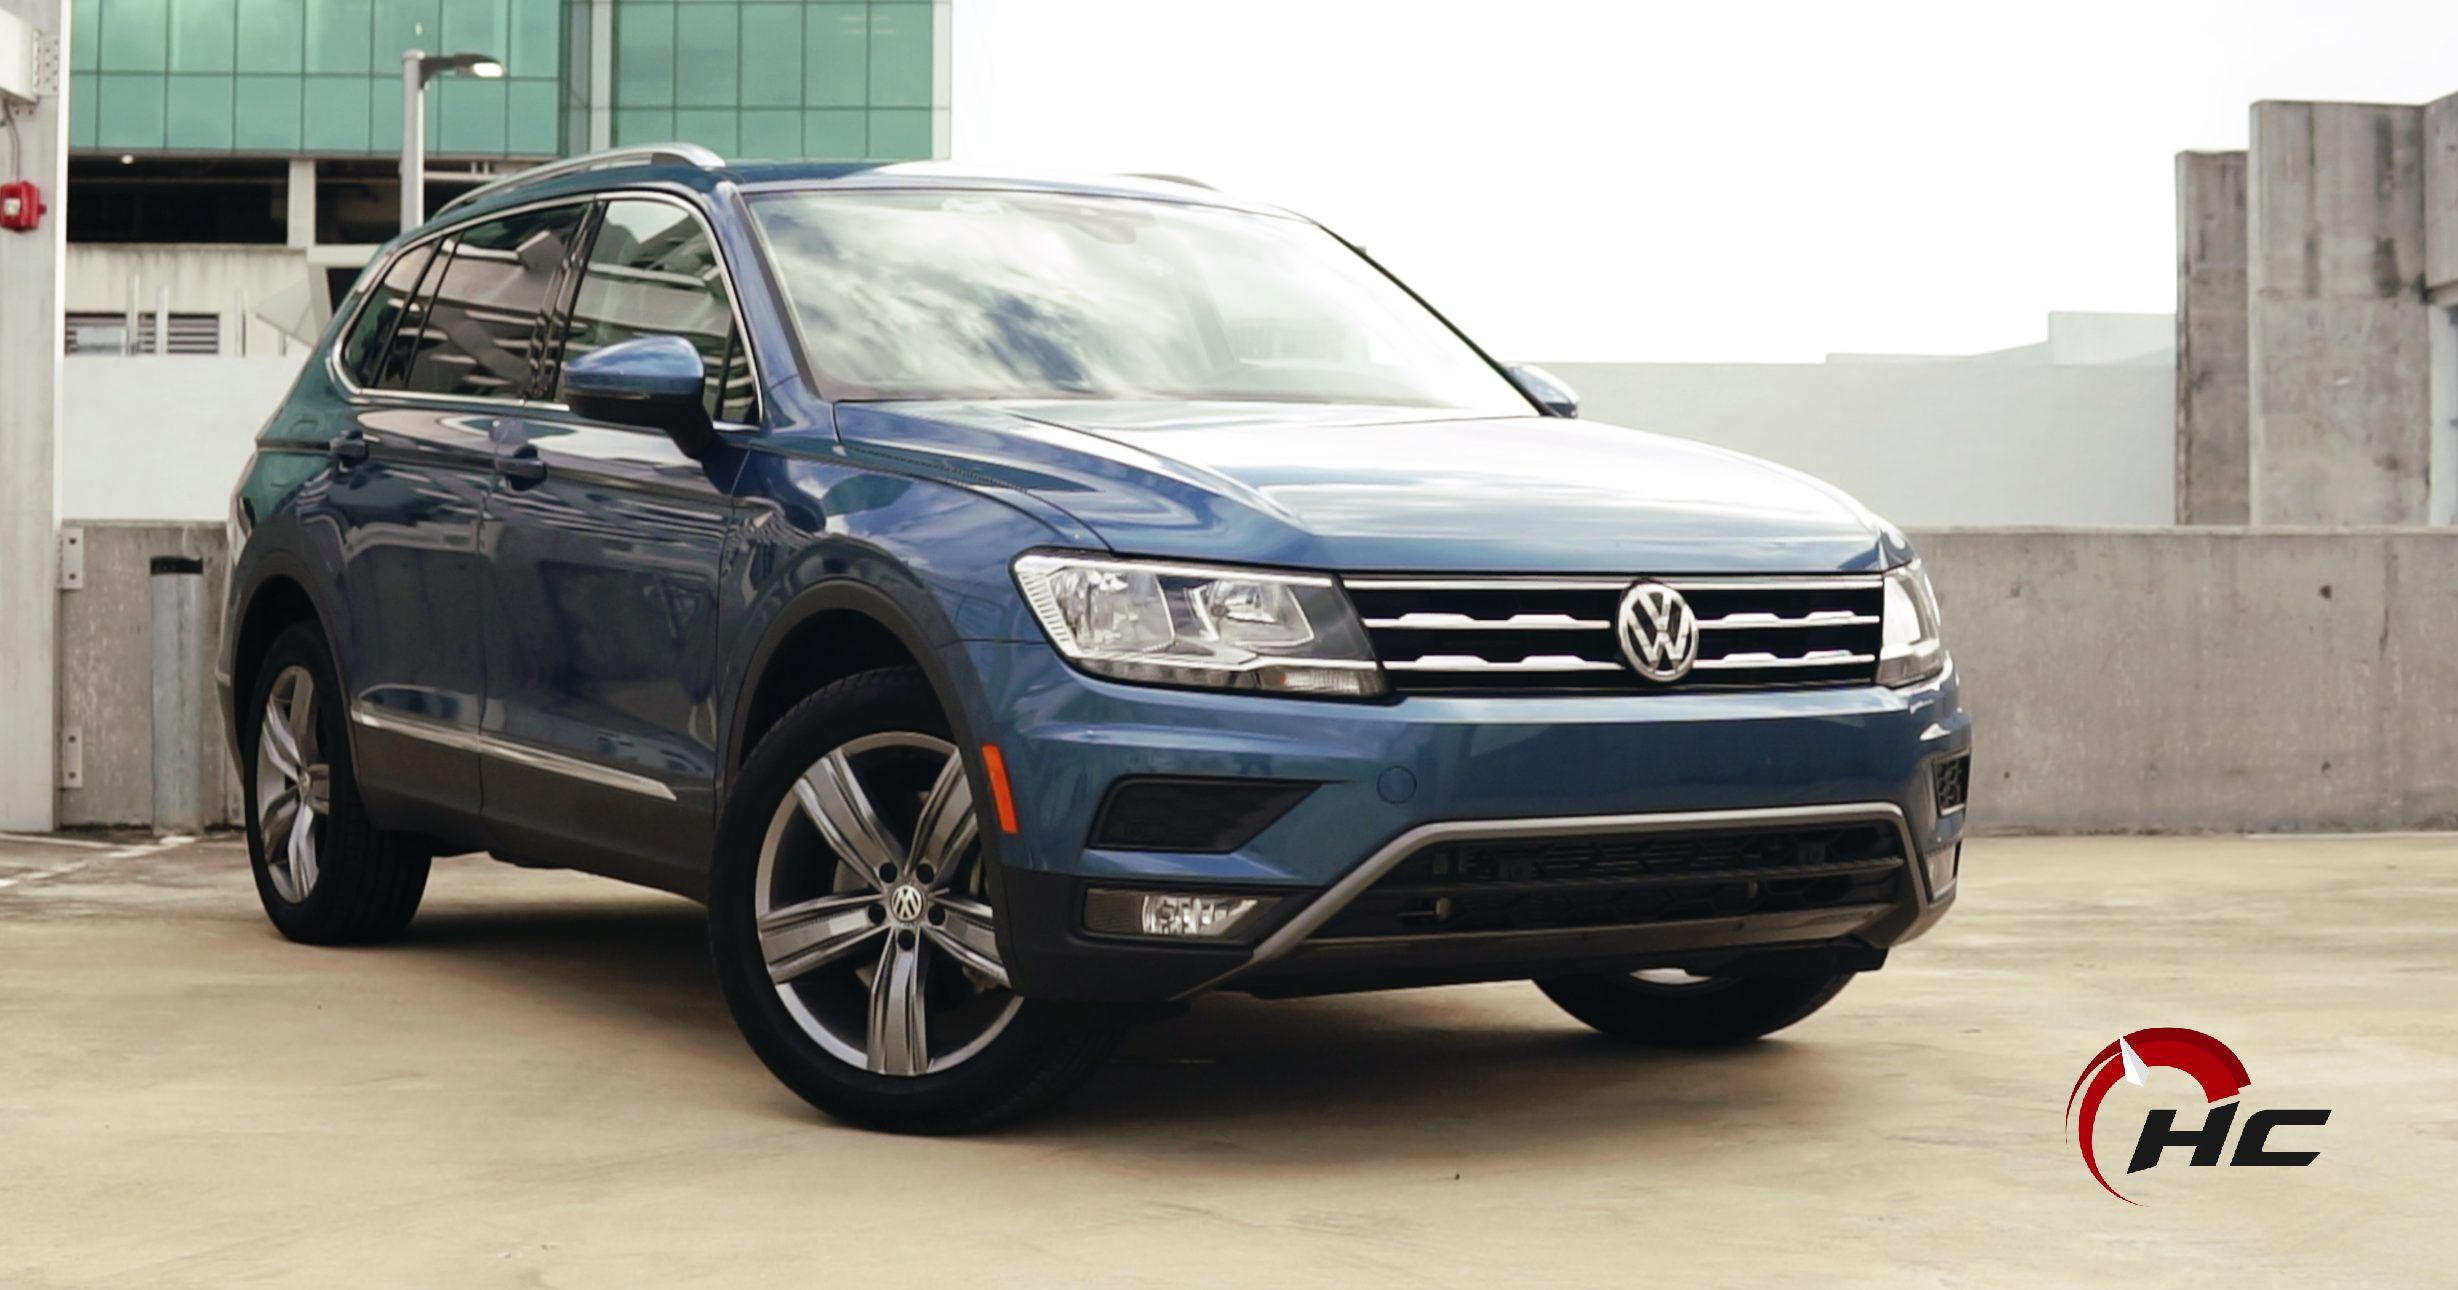 2020 Volkswagen Tiguan Review: It's All About The Drive   HotCars